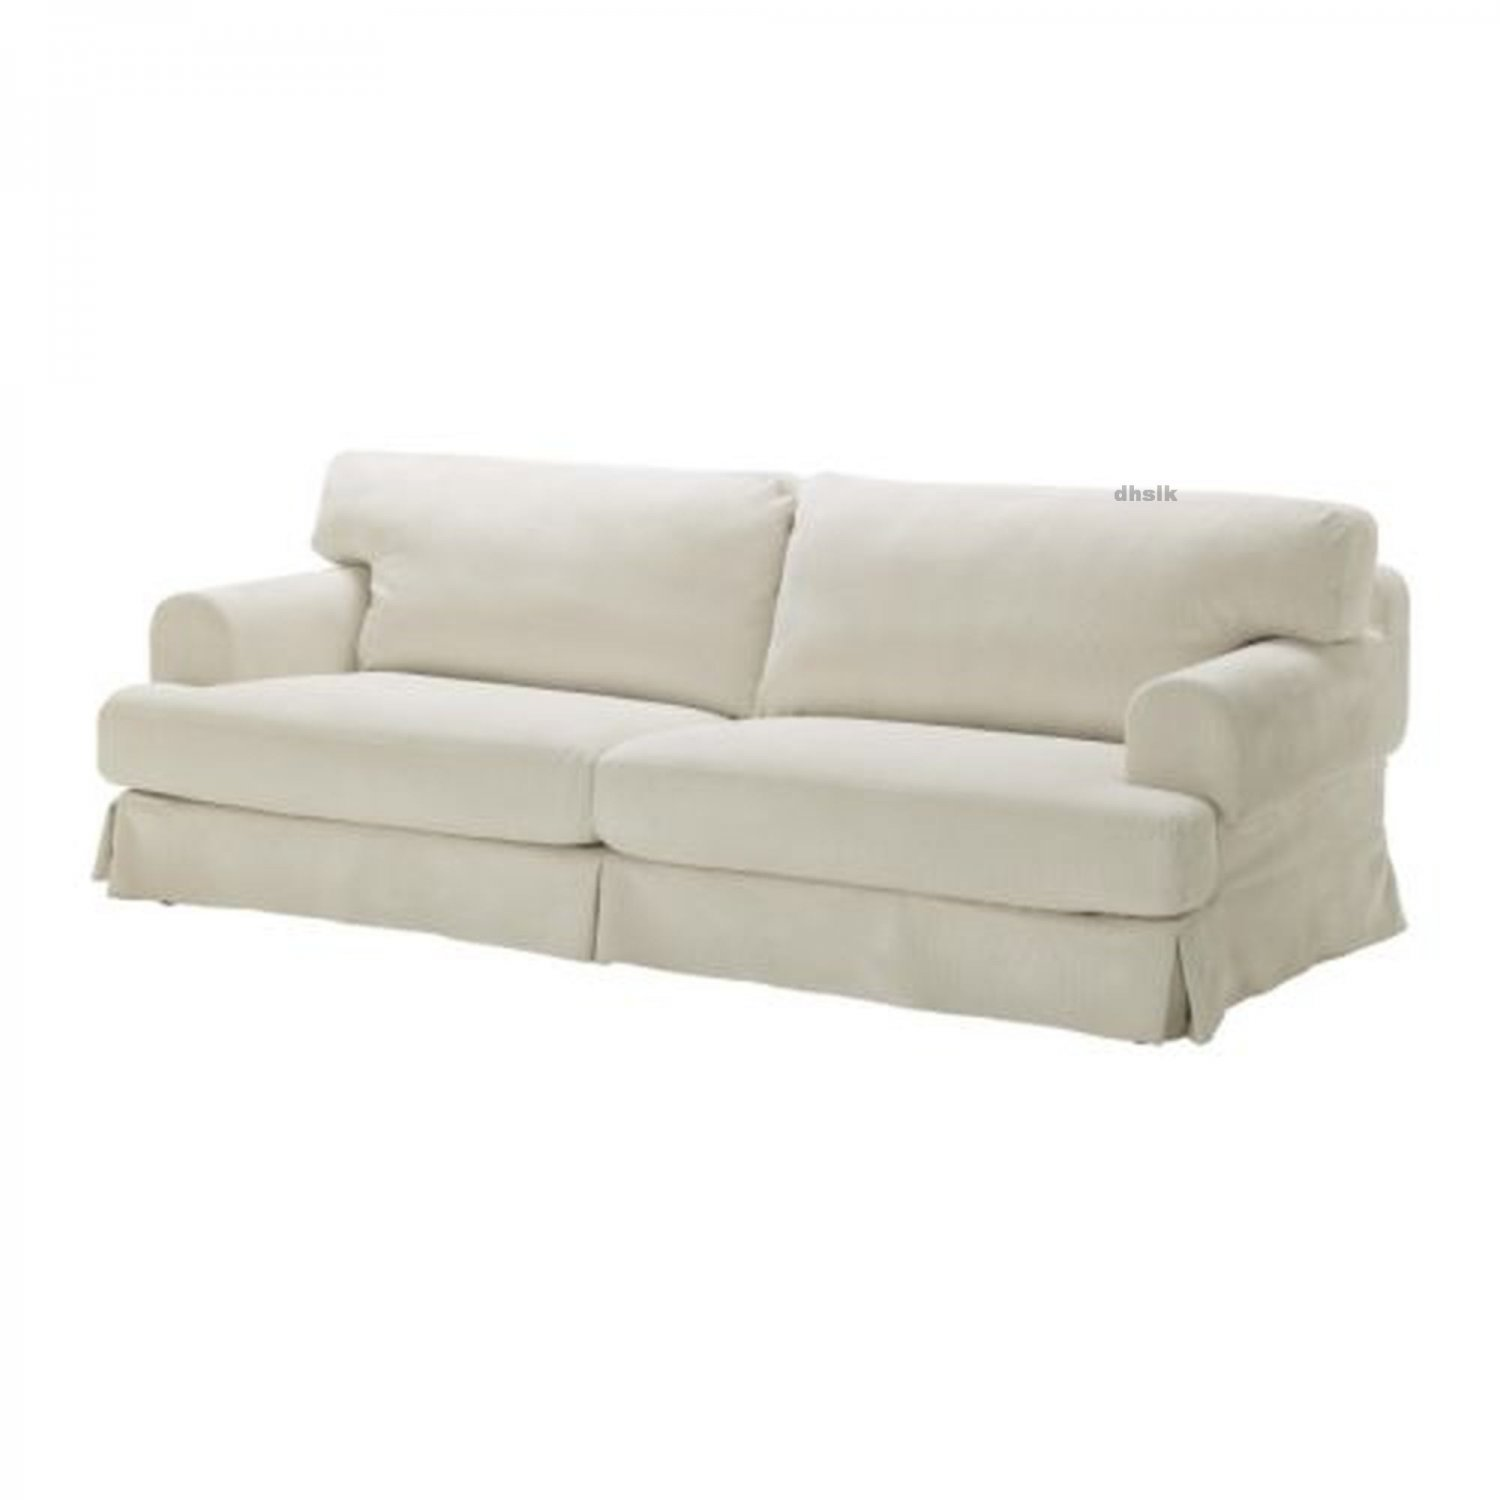 off white slipcover sofa simply sofas crows nest ikea hovÅs hovas cover graddo beige